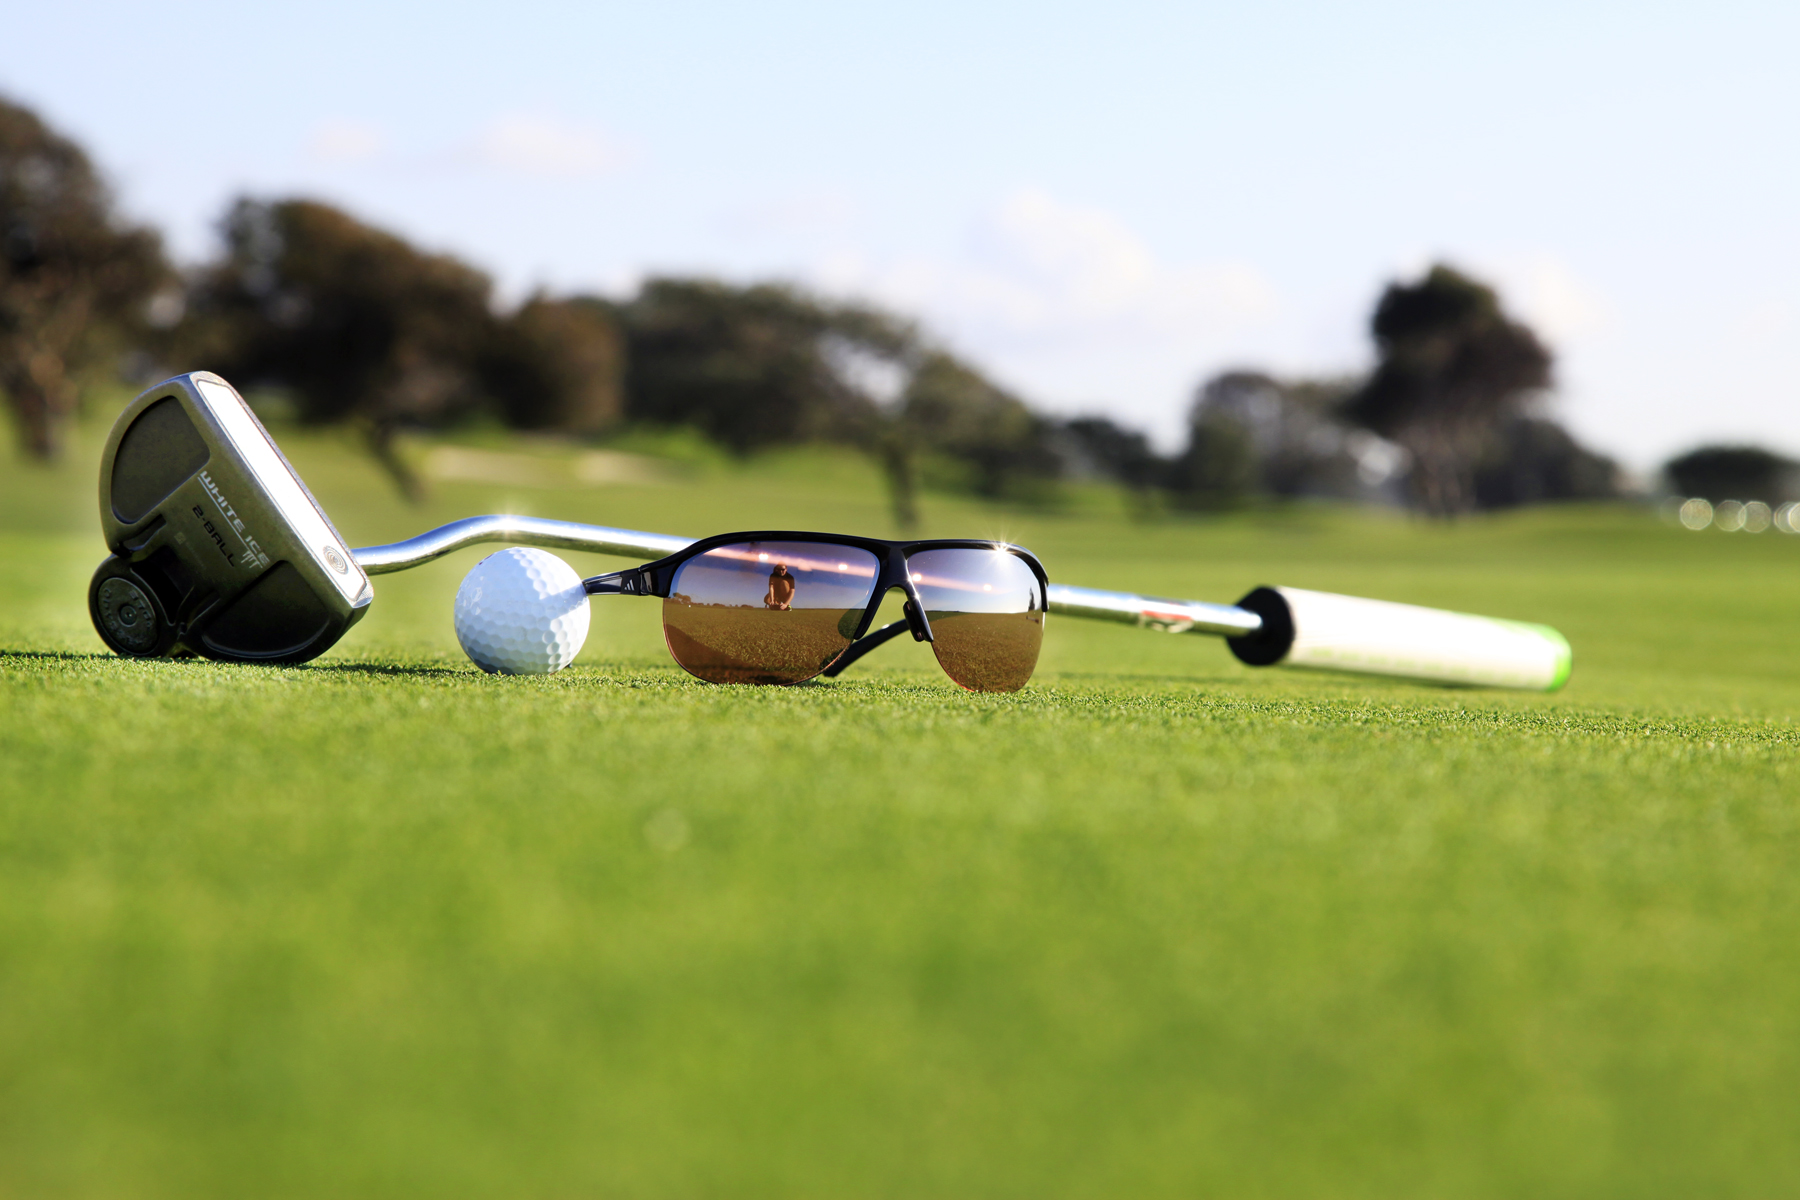 Lens Colors for Golf Sunglasses